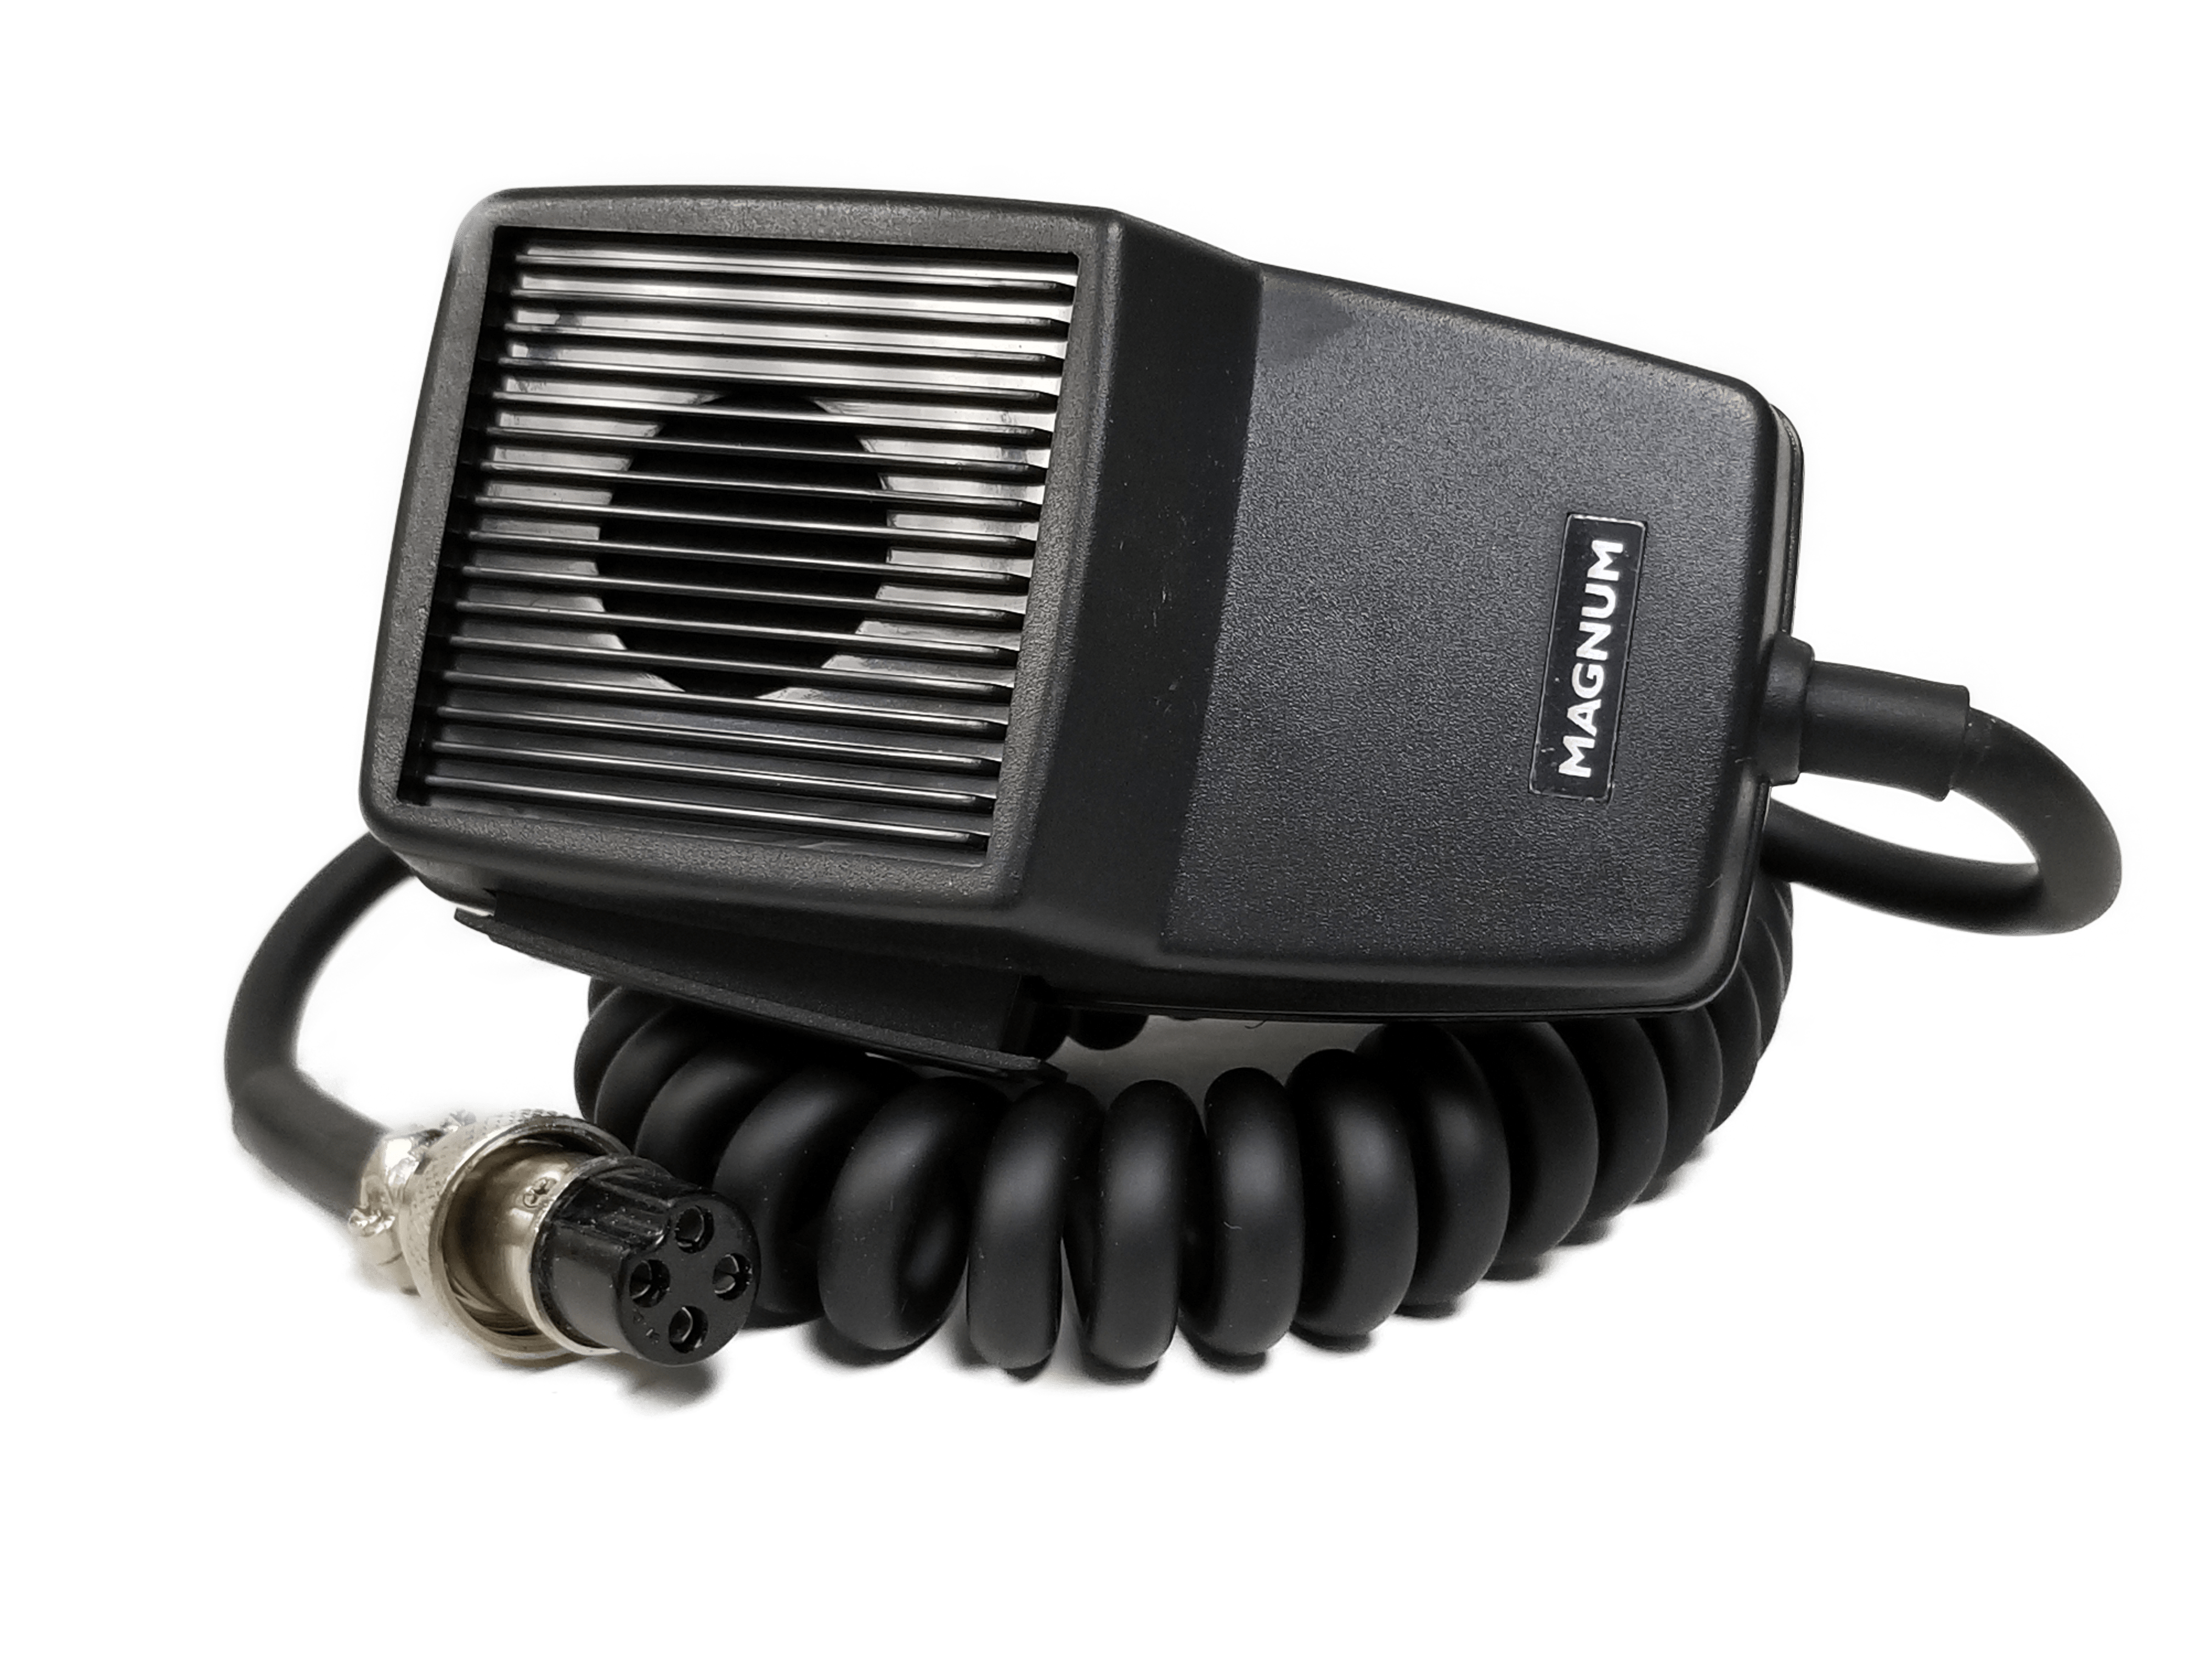 MAGSMIC - Magnum 4 Pin Dynamic Microphone For S3 & S6 Nitro Radios